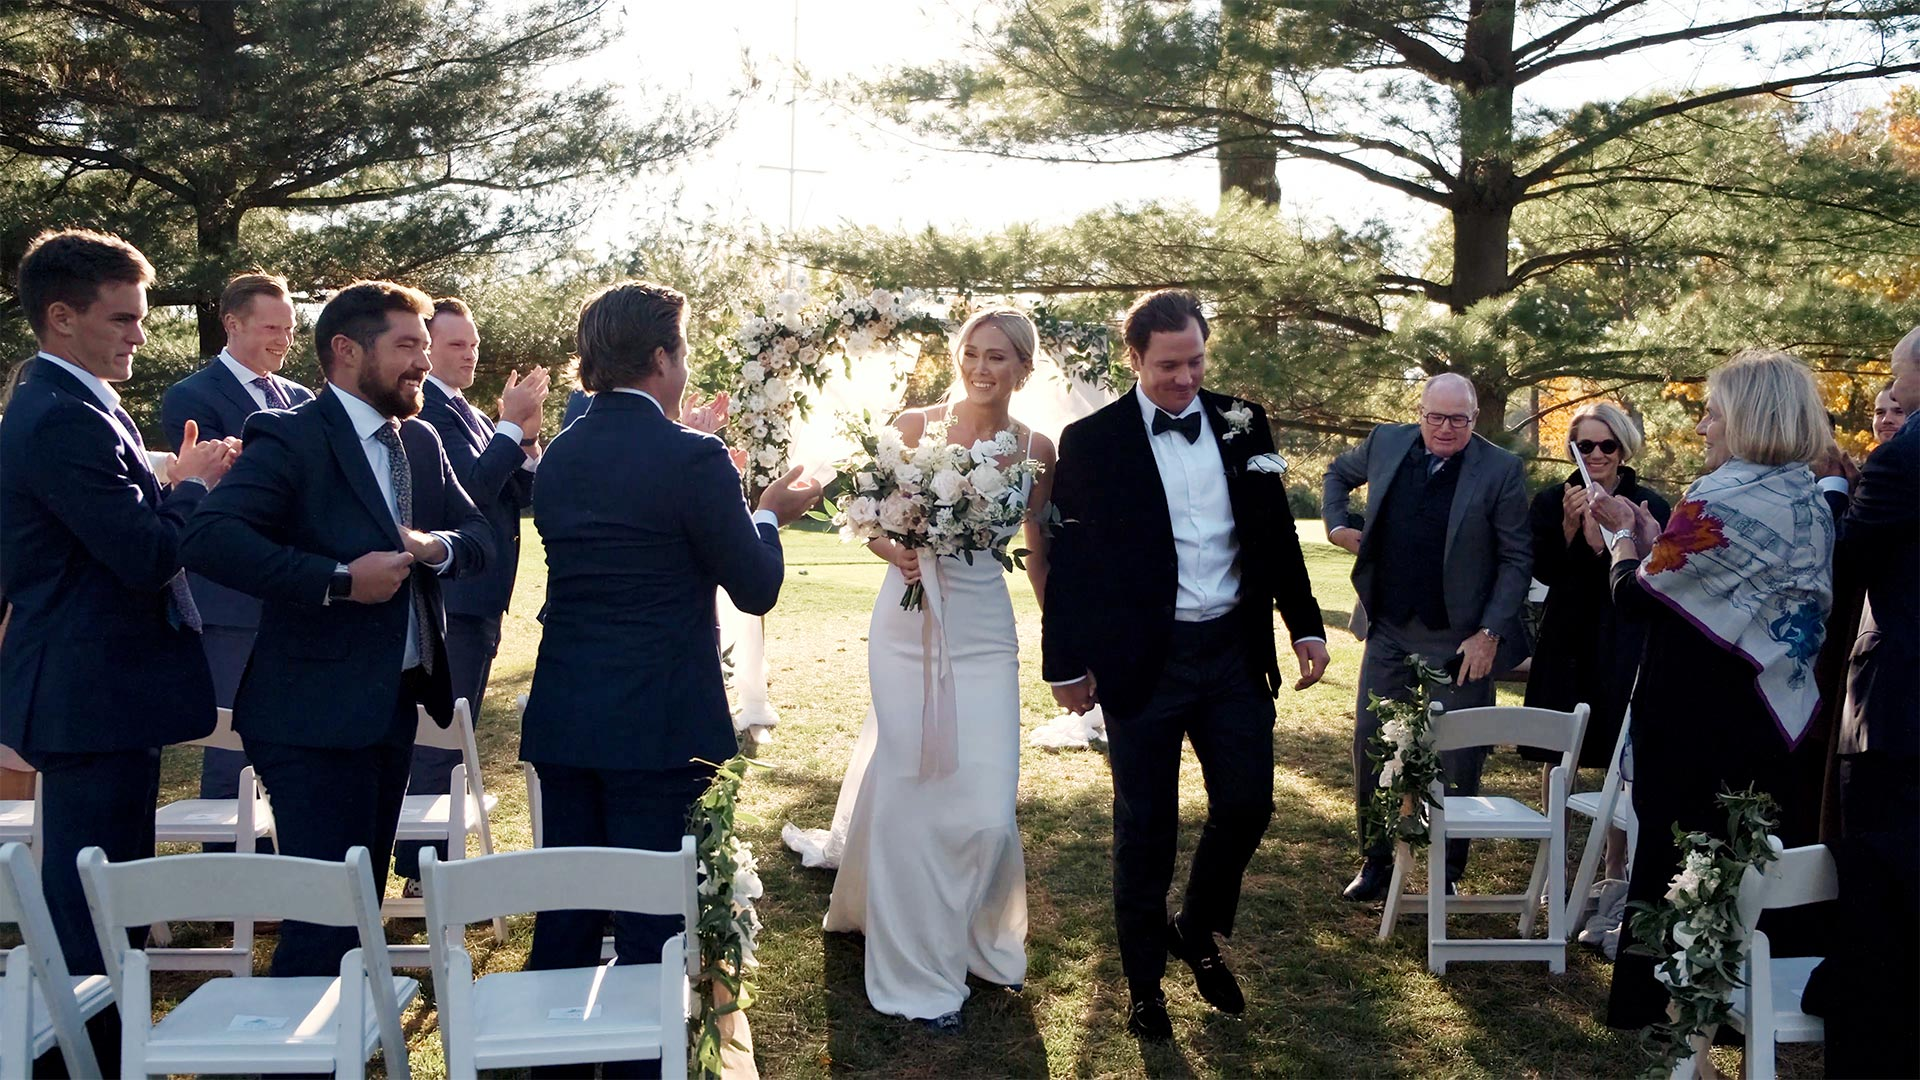 Couple walk down the aisle of their micro wedding ceremony at Toronto Golf Club